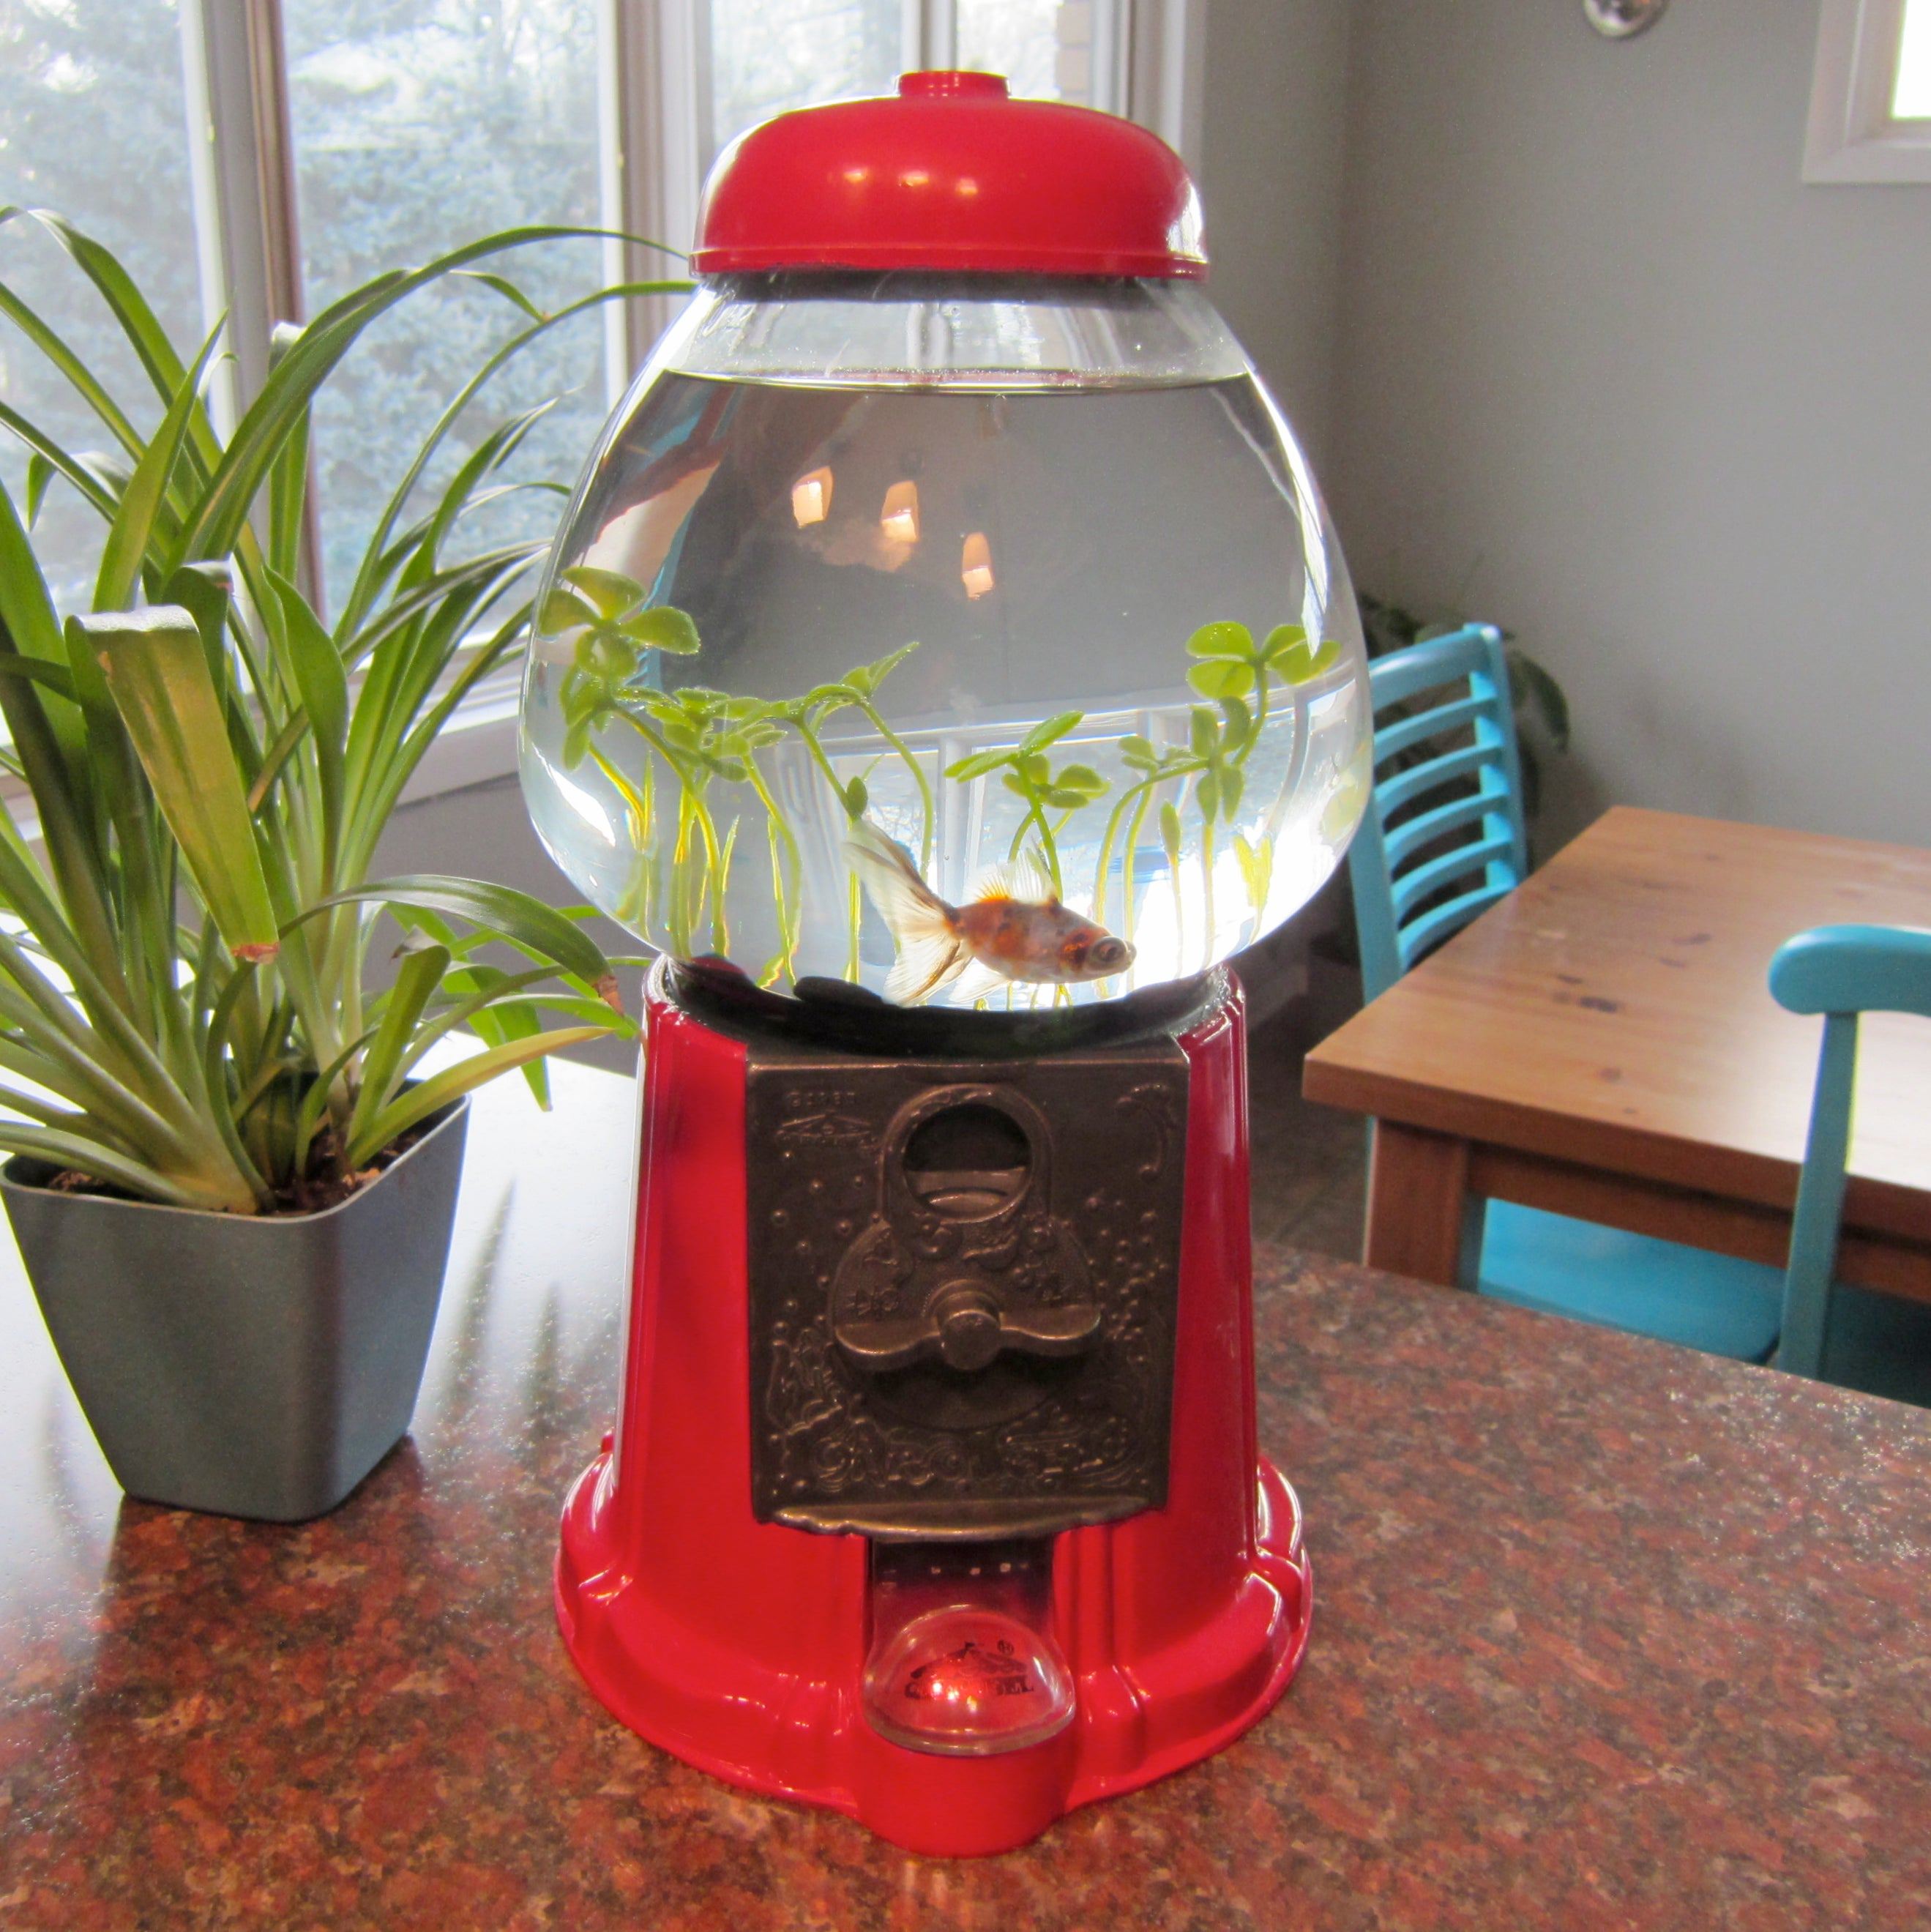 1 Gallon Gumball Style Plastic Cookie Jar Fish Bowl with Lid